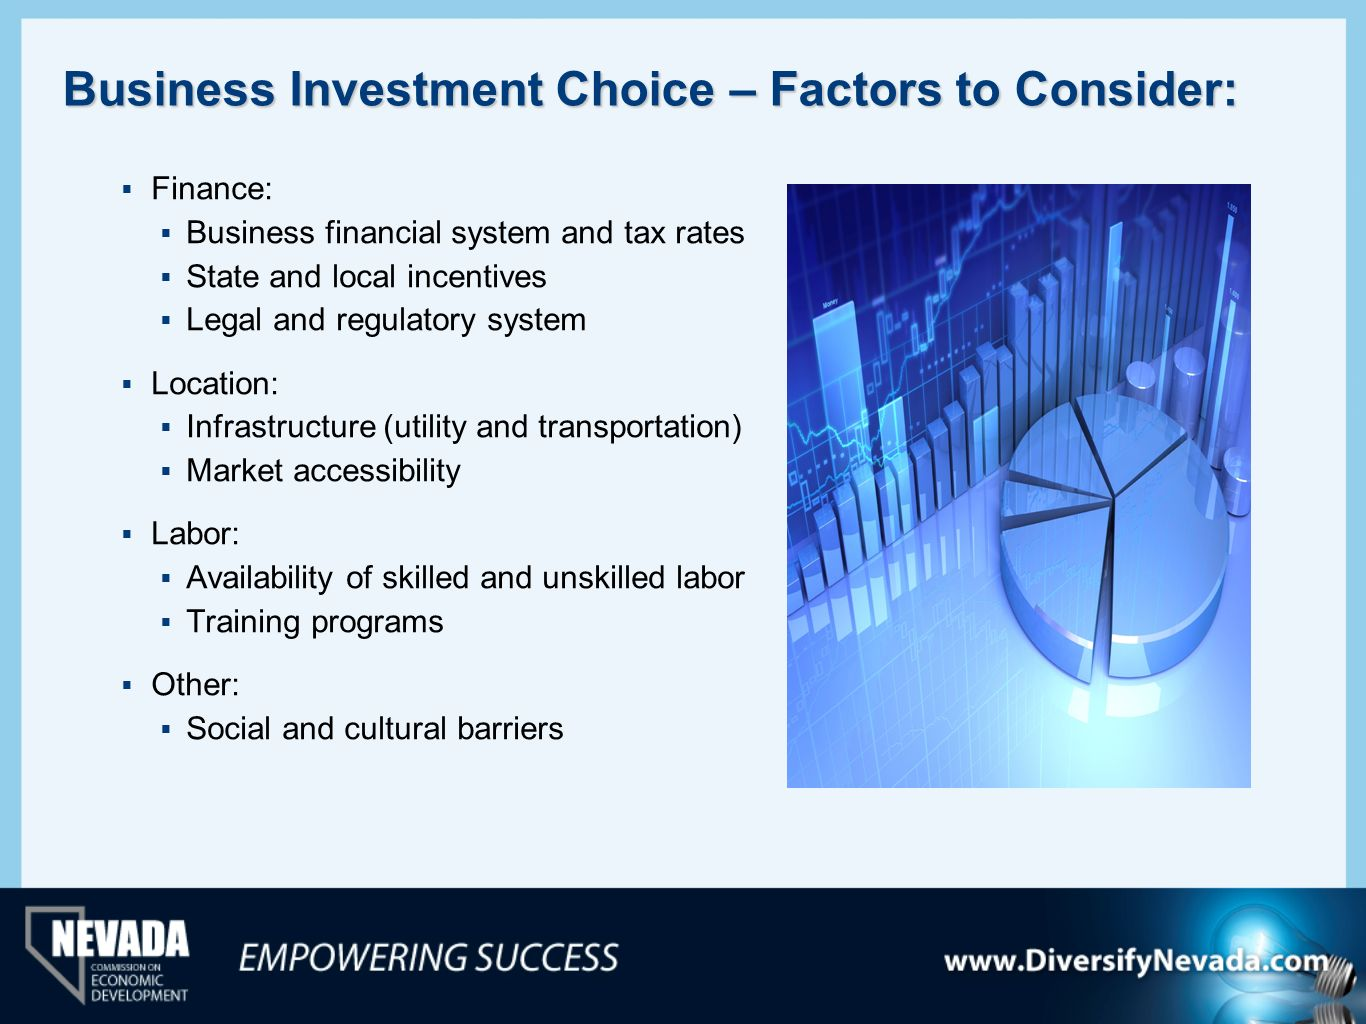 Business Investment Choice – Factors to Consider: